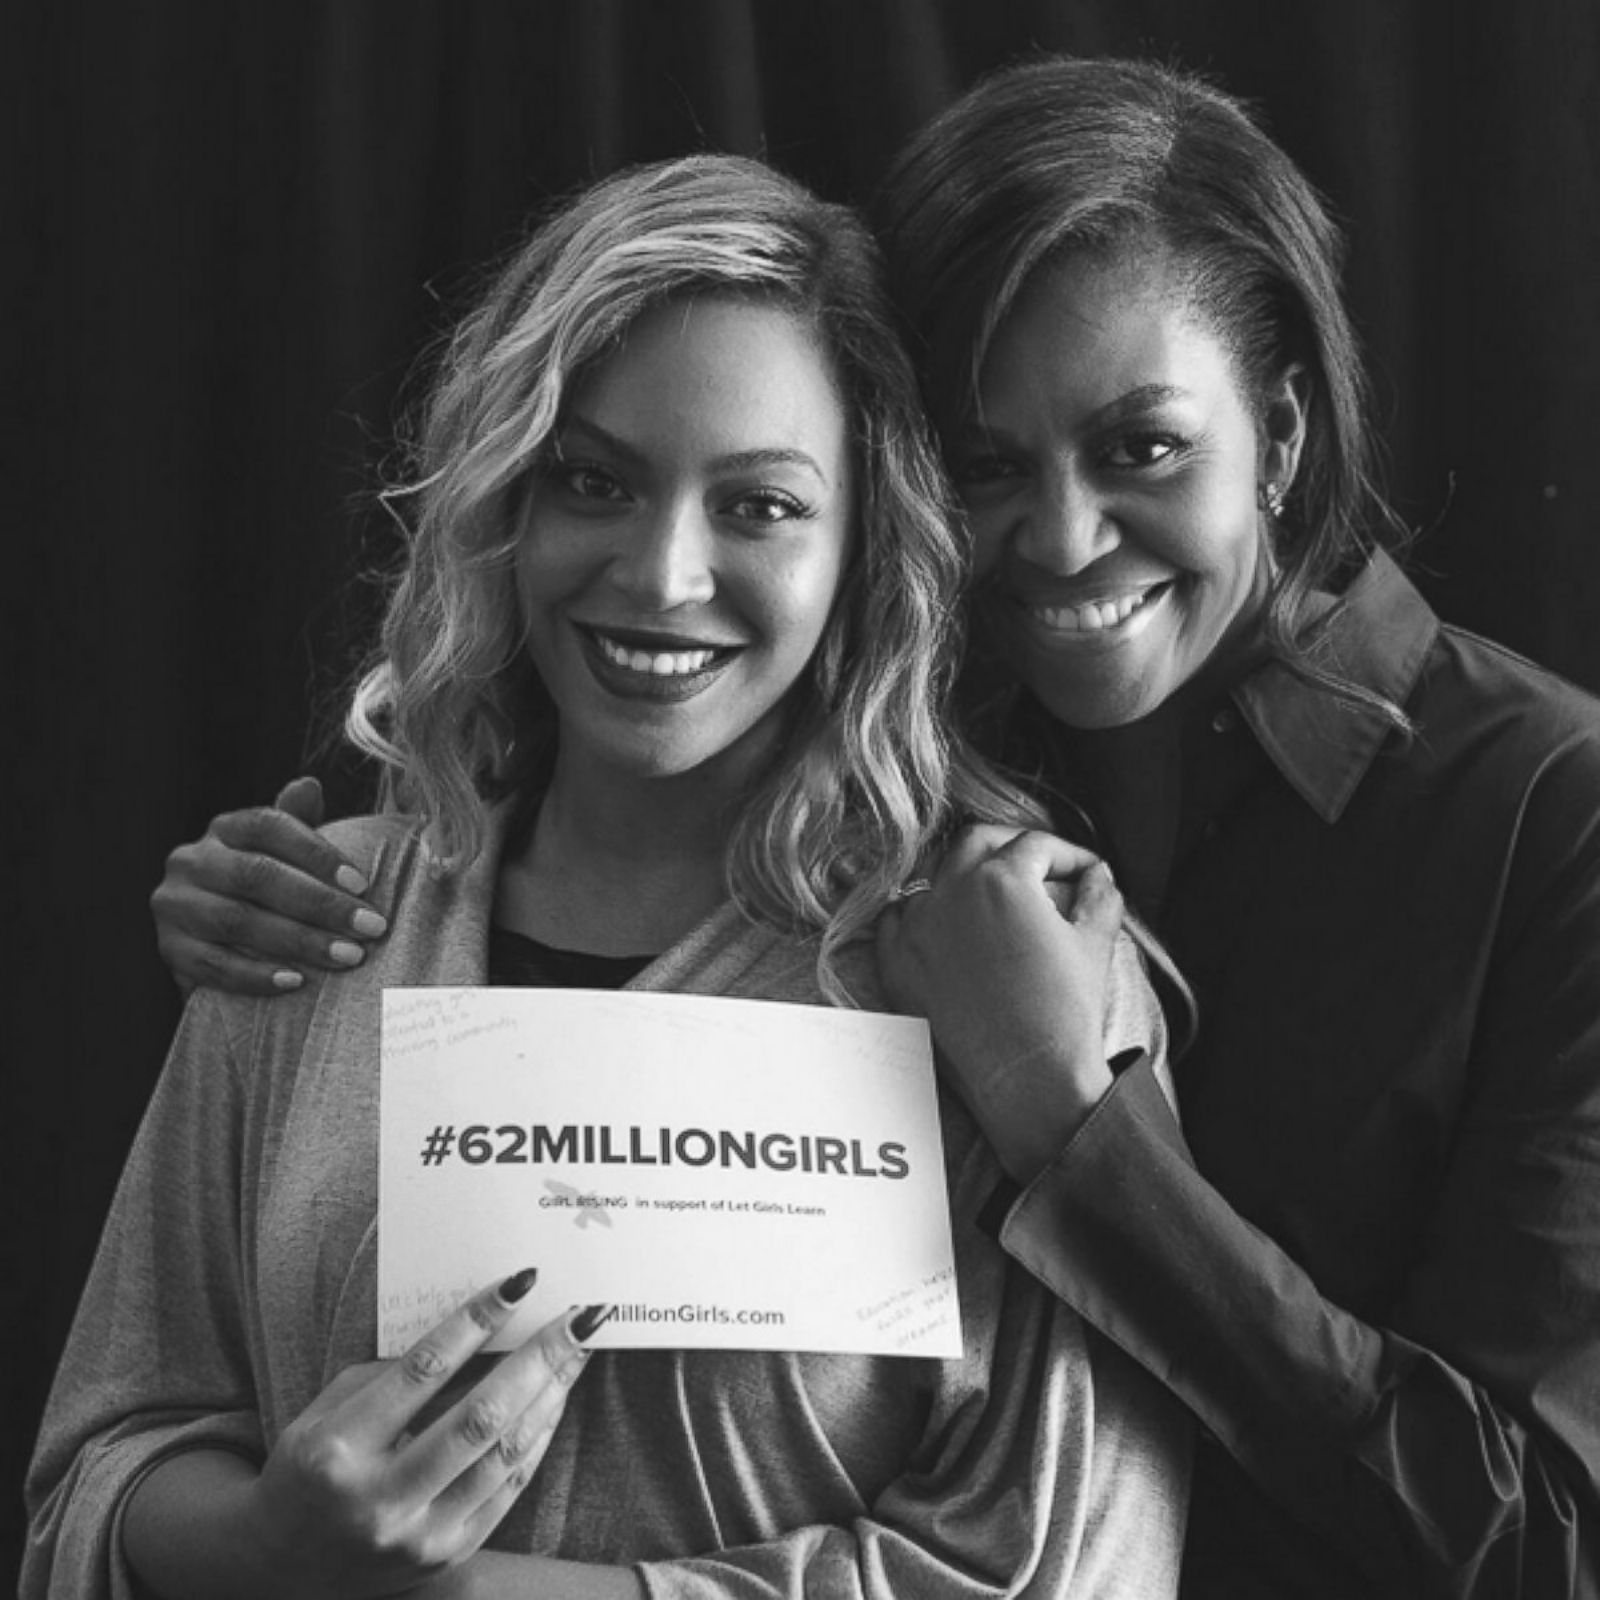 2019 year lifestyle- Supports beyonce michelle obamas lets move campaign